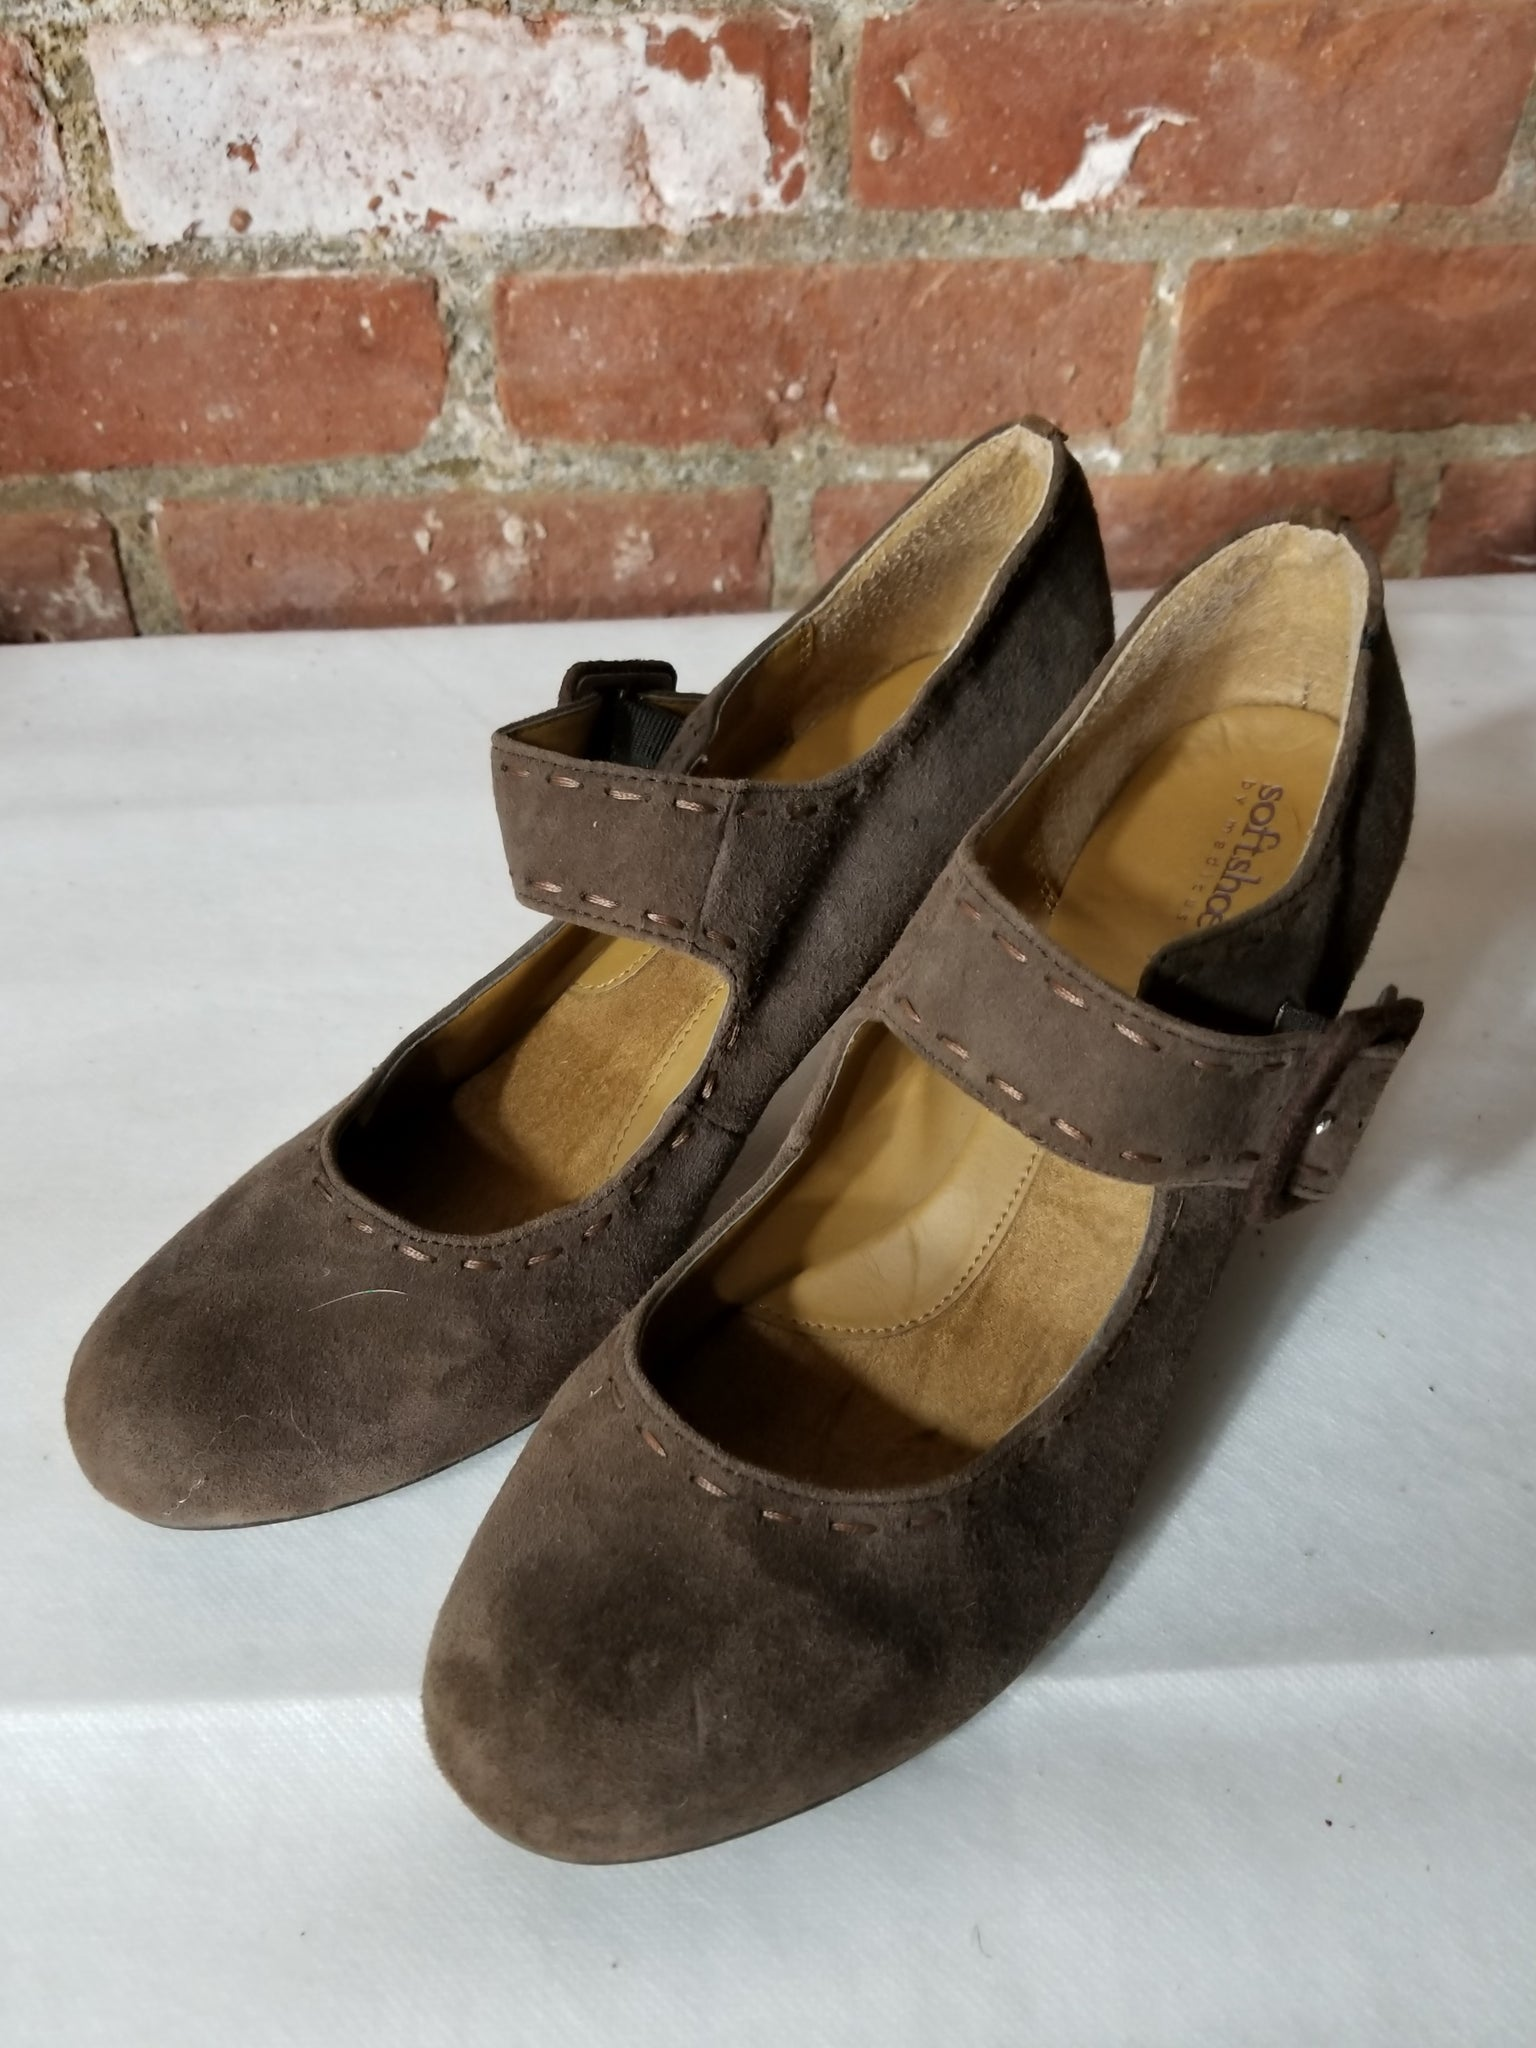 AUCTION ITEM - Soft Shoe by Medicus Brown Suede Maryjanes Size 11